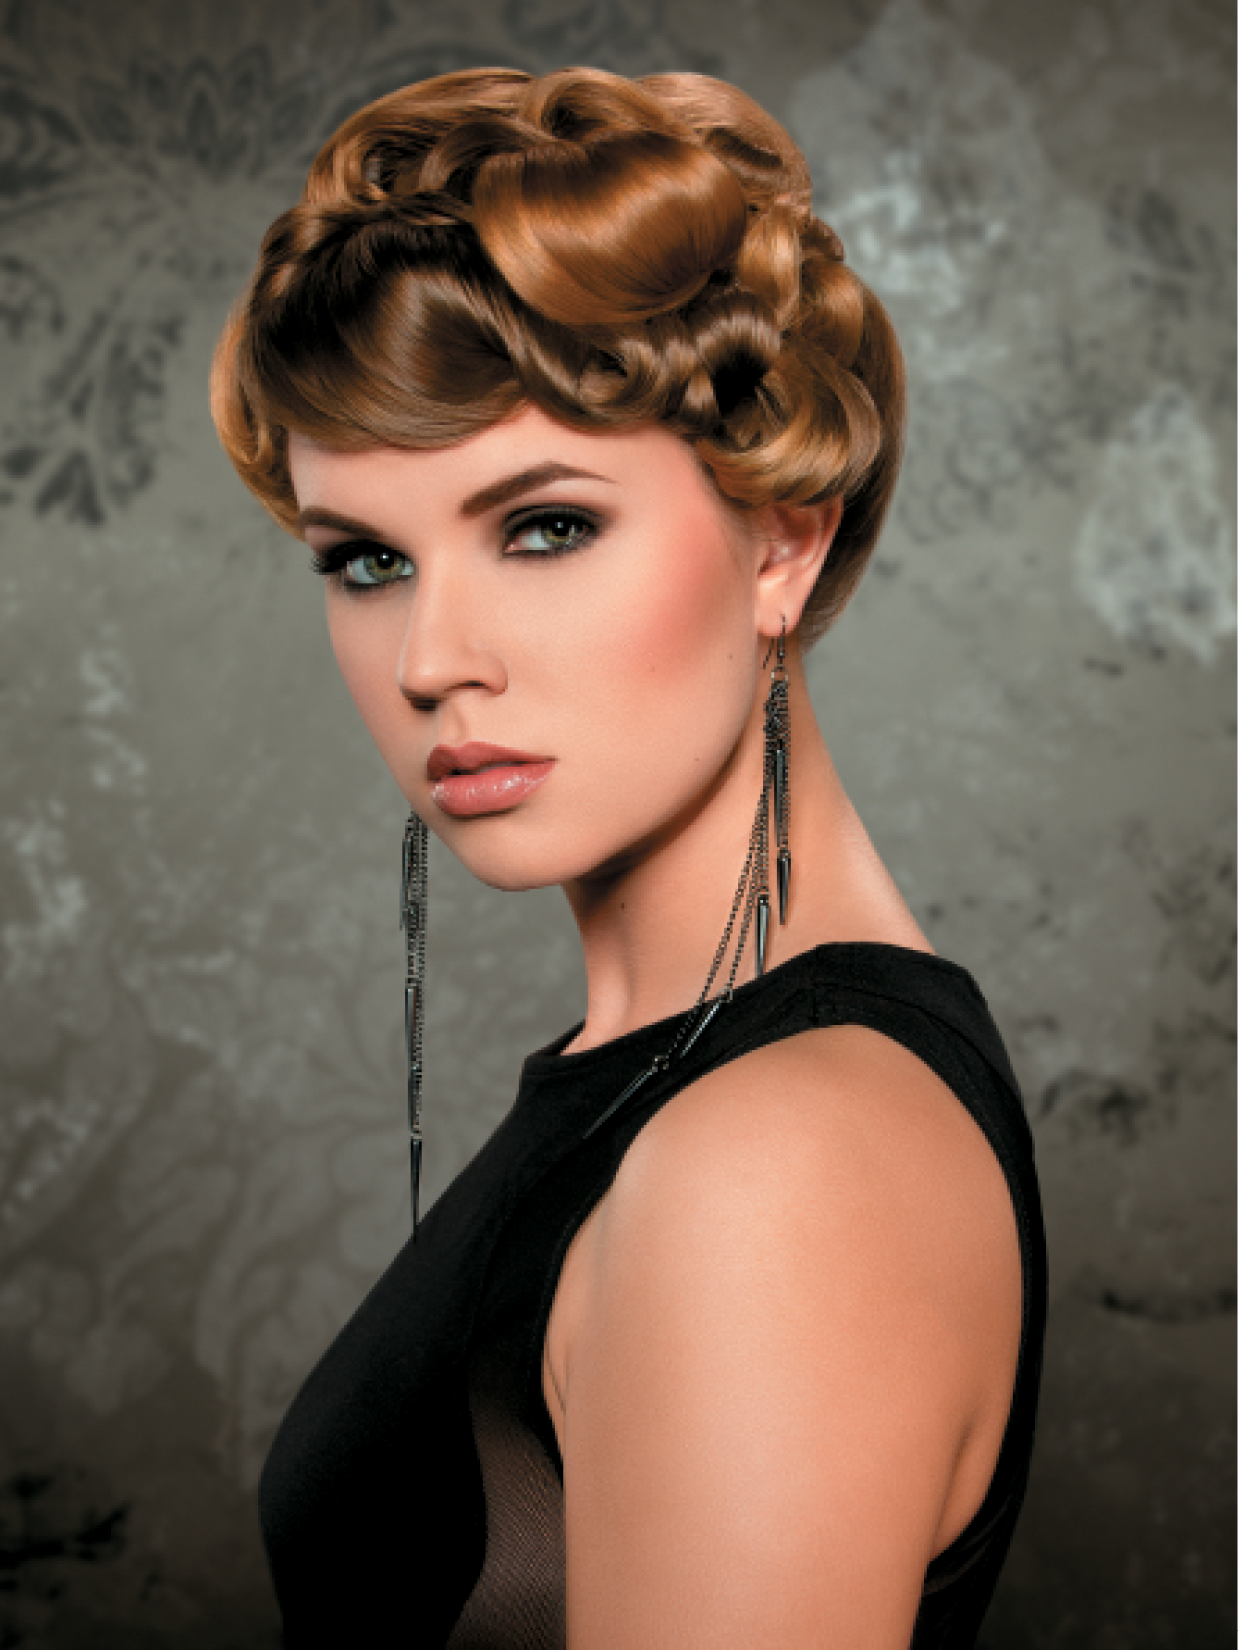 Aurilla Goldsmith set medium-sized hot rollers away from the face in a brick-lay pattern to create a soft bend in the hair. She then parted all sections into different-sized triangles and proceeded with twisting and flat-pinning the hair, with the focal point above the right eye. She polished flyaways with Martin Parsons hairspray.